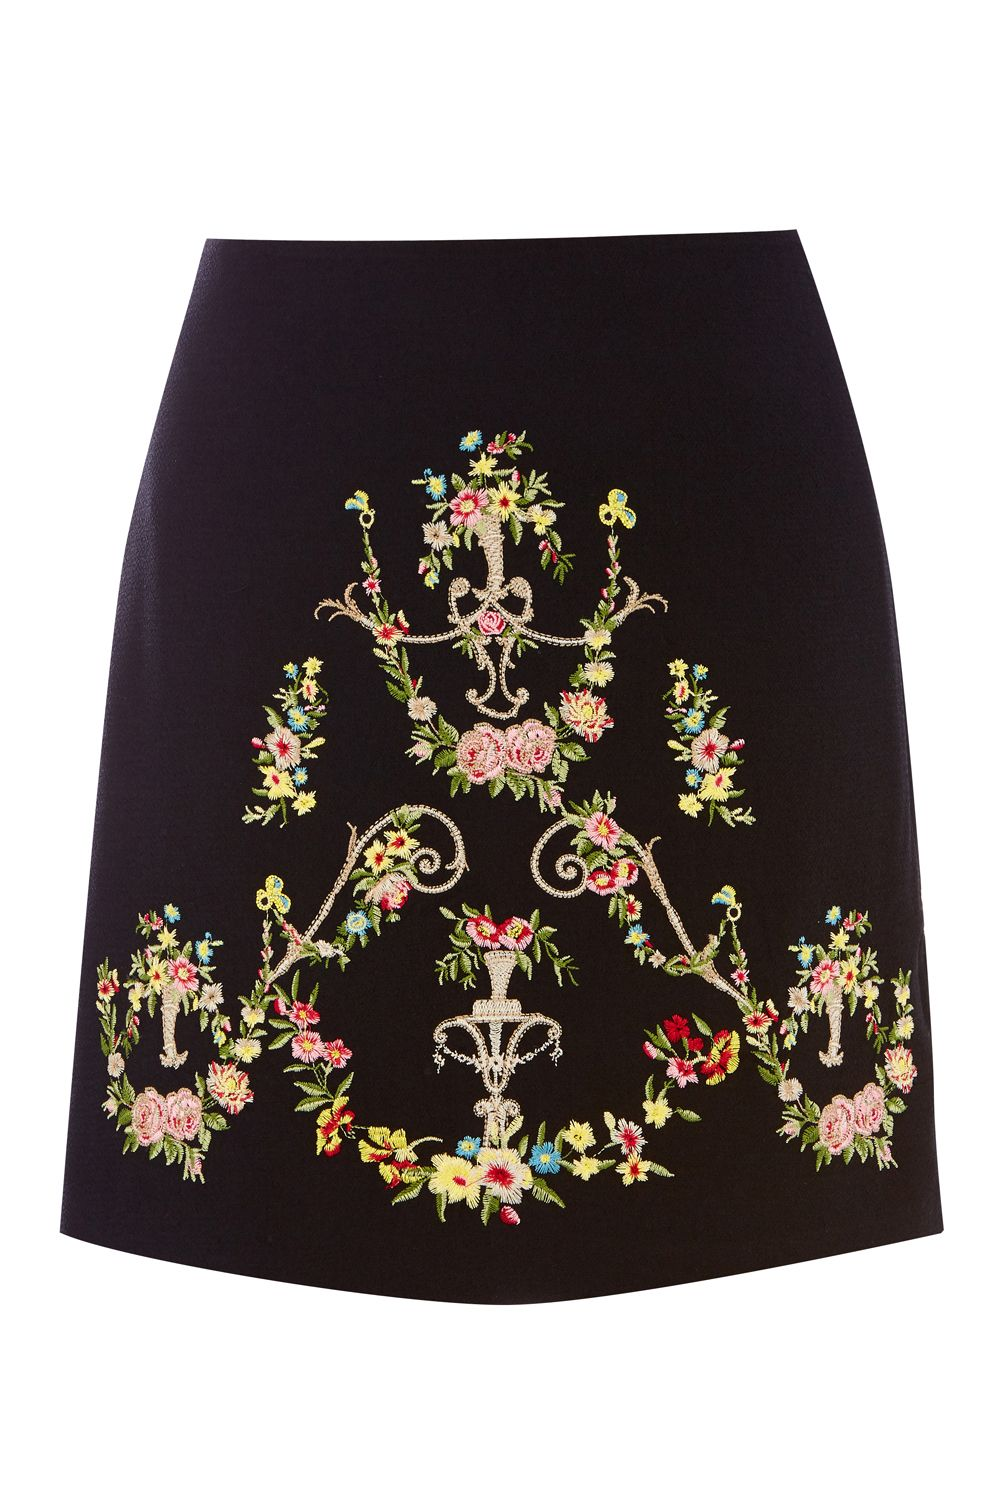 Oasis NINA EMBROIDERED SKIRT, Multi-Coloured